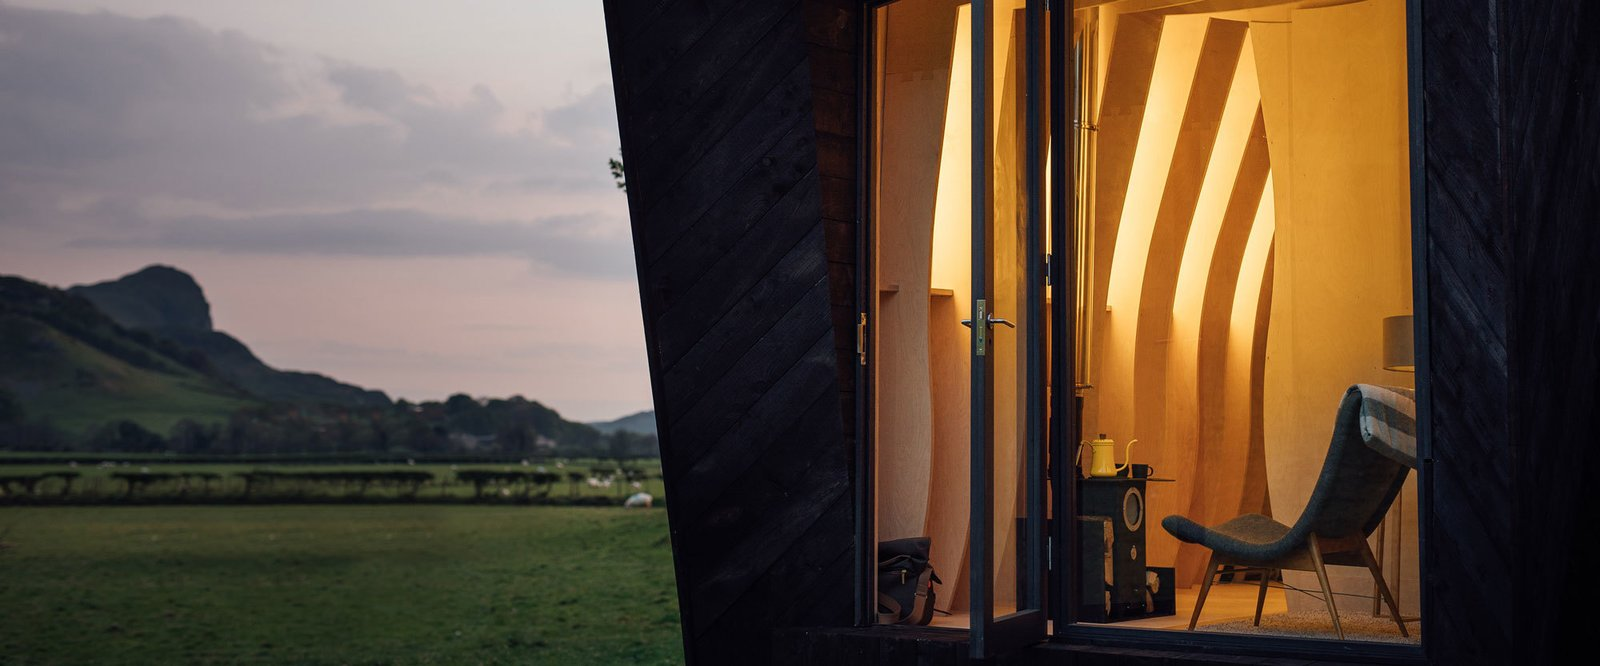 Tour One of Epic Retreat's Tiny Pop-Up Hotel Cabins in the Welsh Countryside - Photo 3 of 11